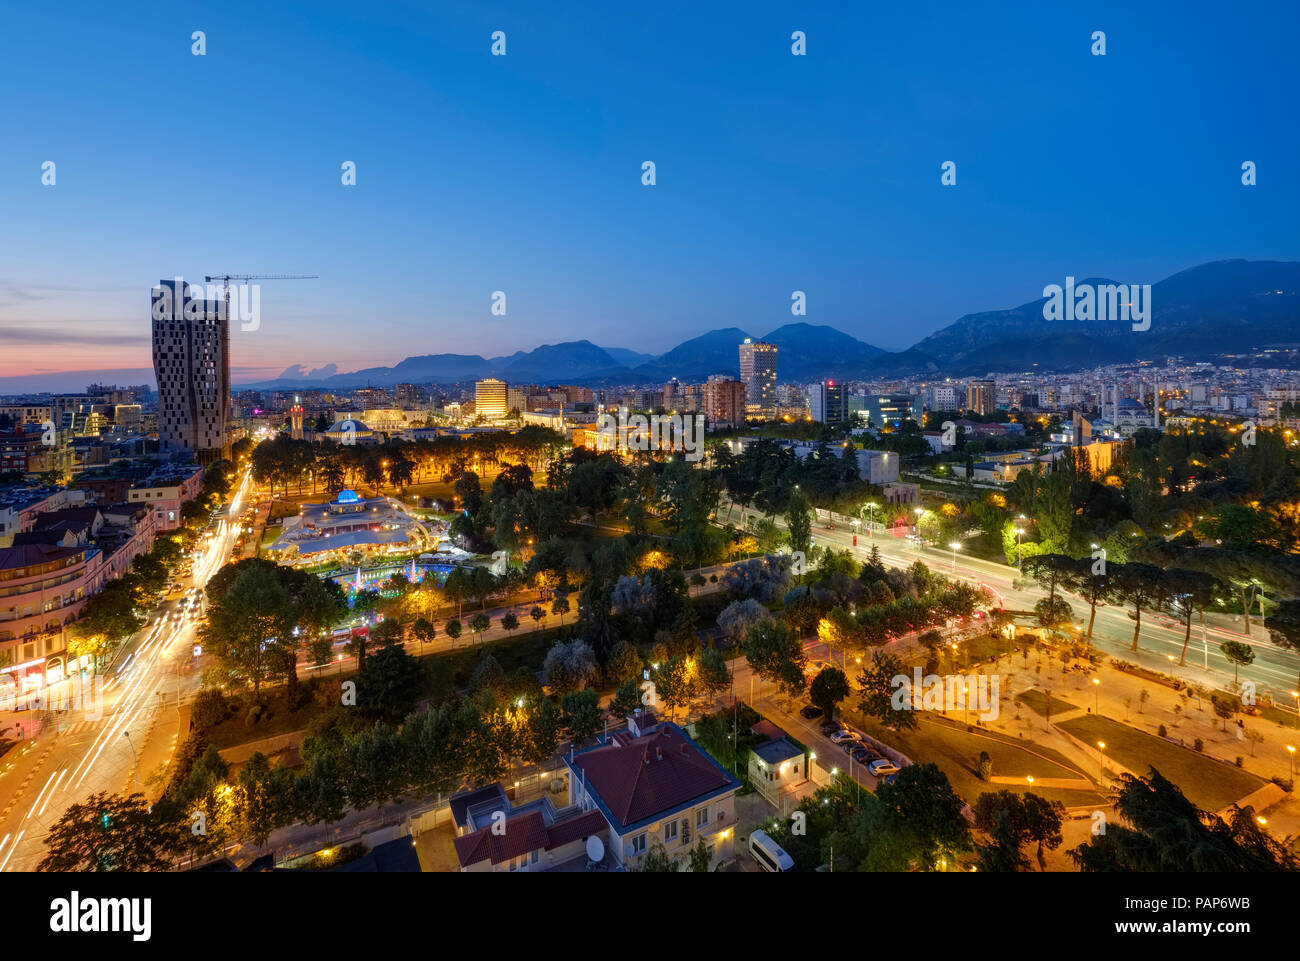 Albania, Tirana, Rinia Park and City Center in the evening - Stock Image